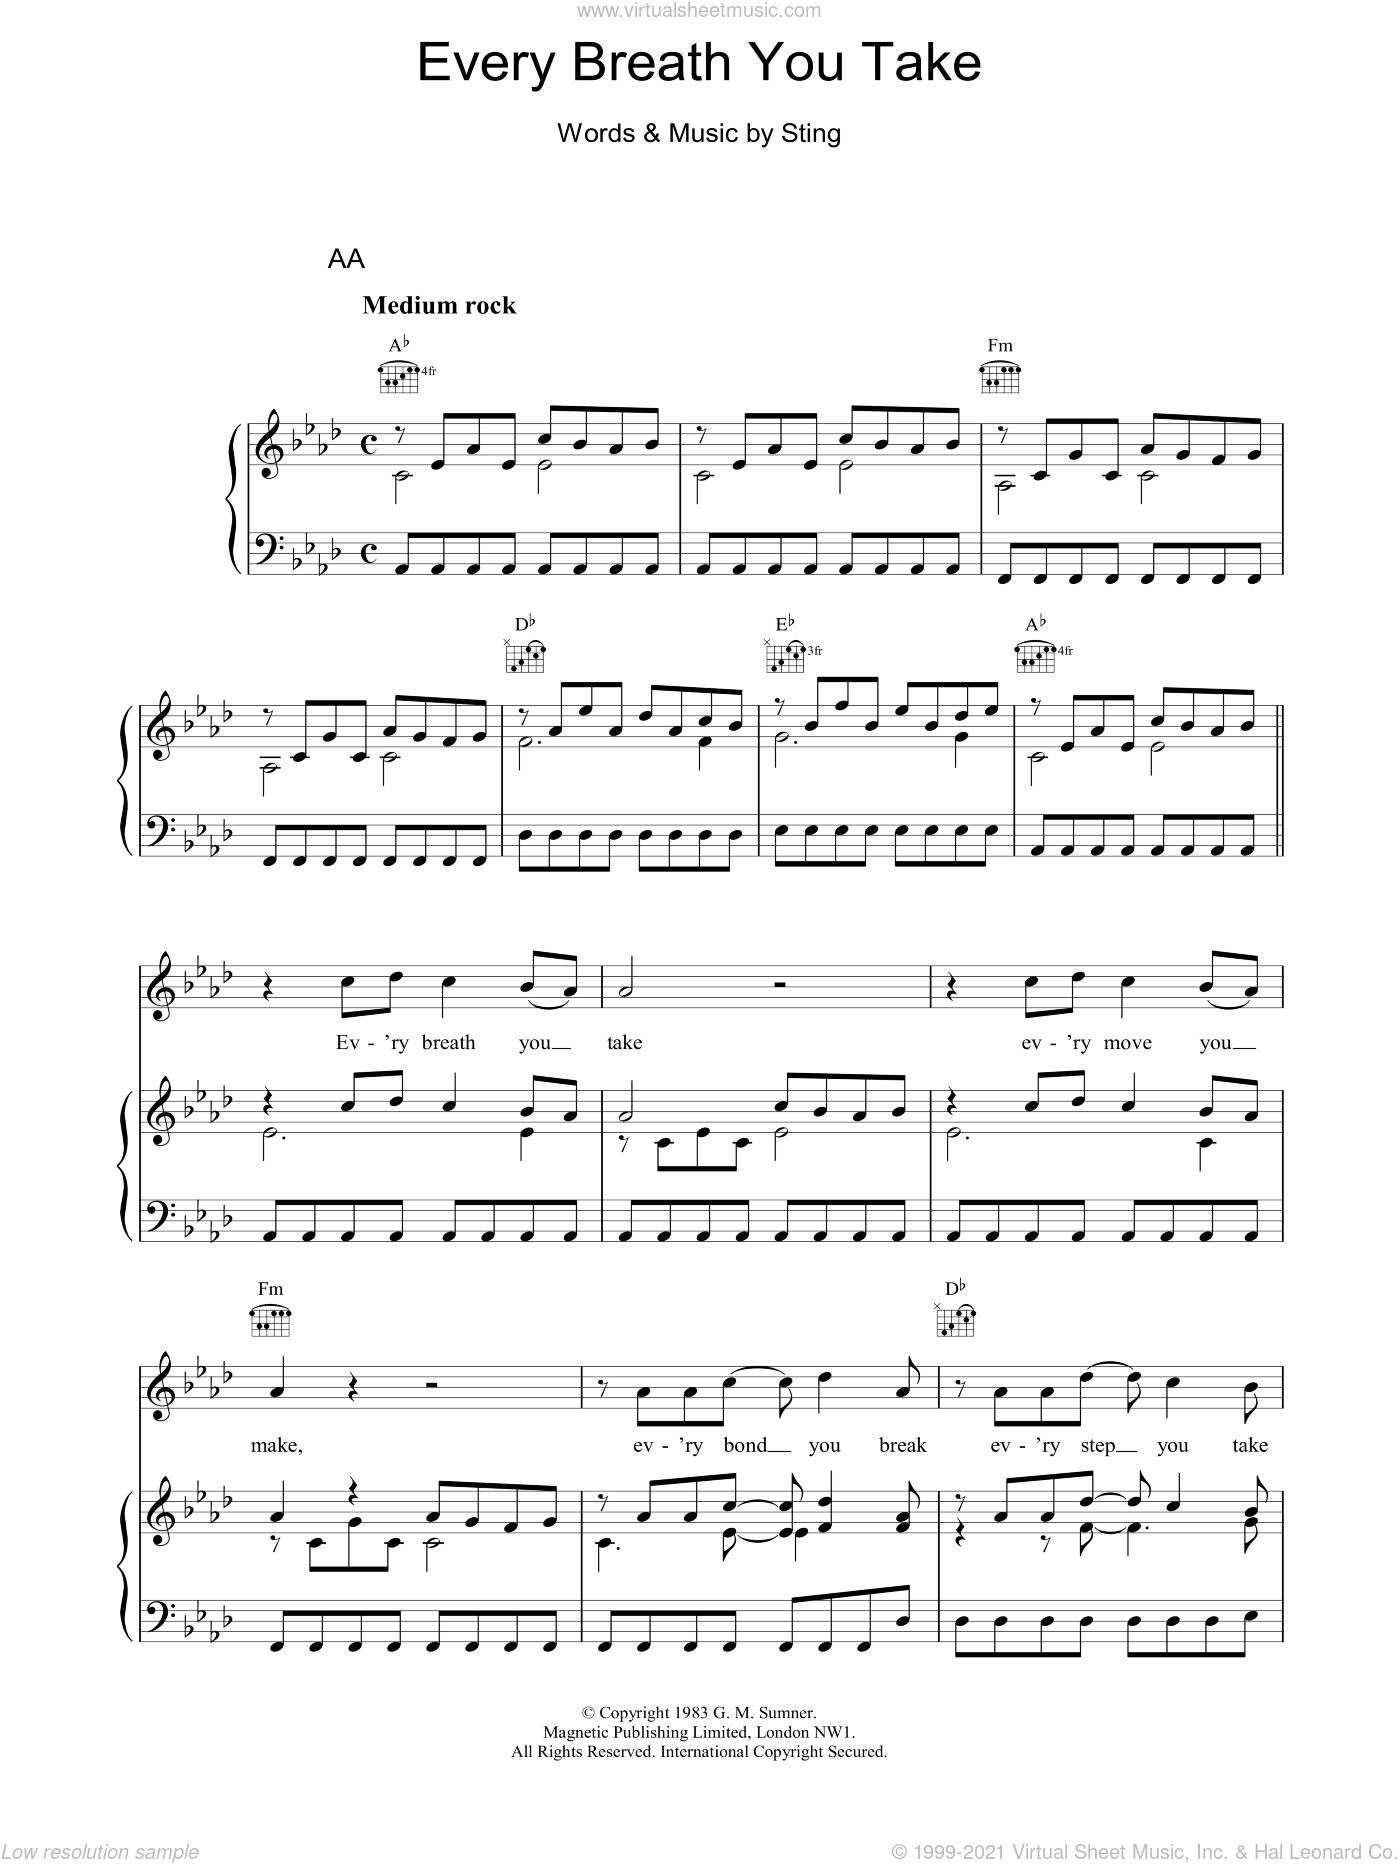 Every Breath You Take sheet music for voice, piano or guitar by The Police and Sting. Score Image Preview.